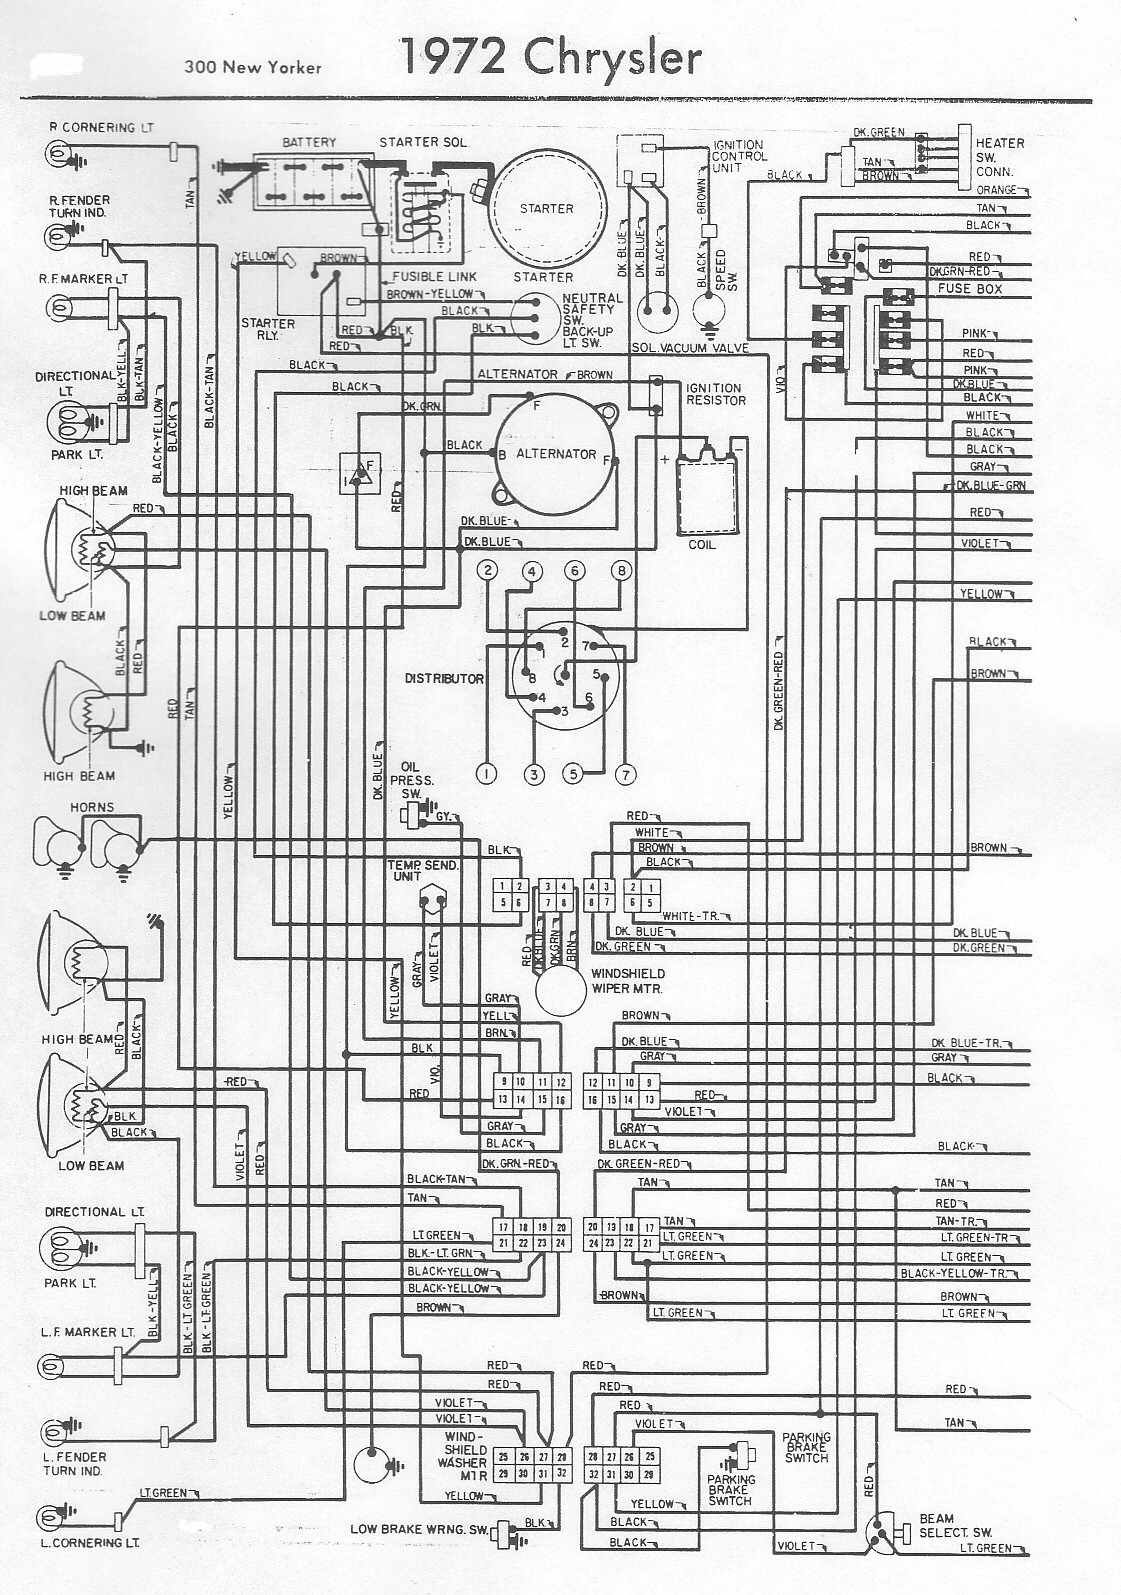 small resolution of 2005 chrysler 300 wiring schematics wiring diagram hub rh 6 20 4 wellnessurlaub 4you de 2005 chrysler 300 electrical diagram 2005 chrysler 300 starter